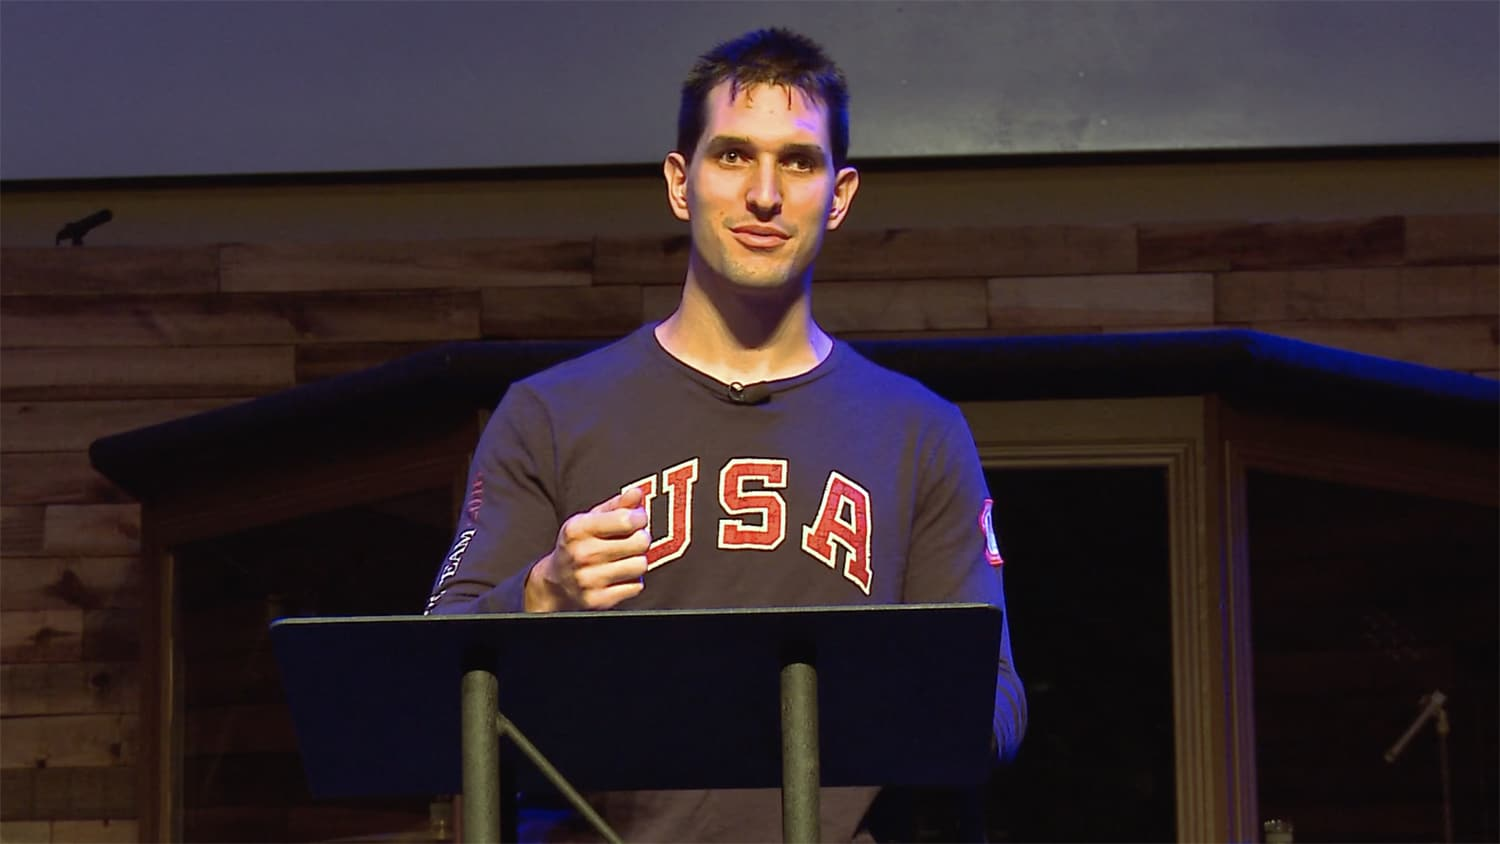 Tyler stands before a podium wearing a long sleeve shirt saying USA